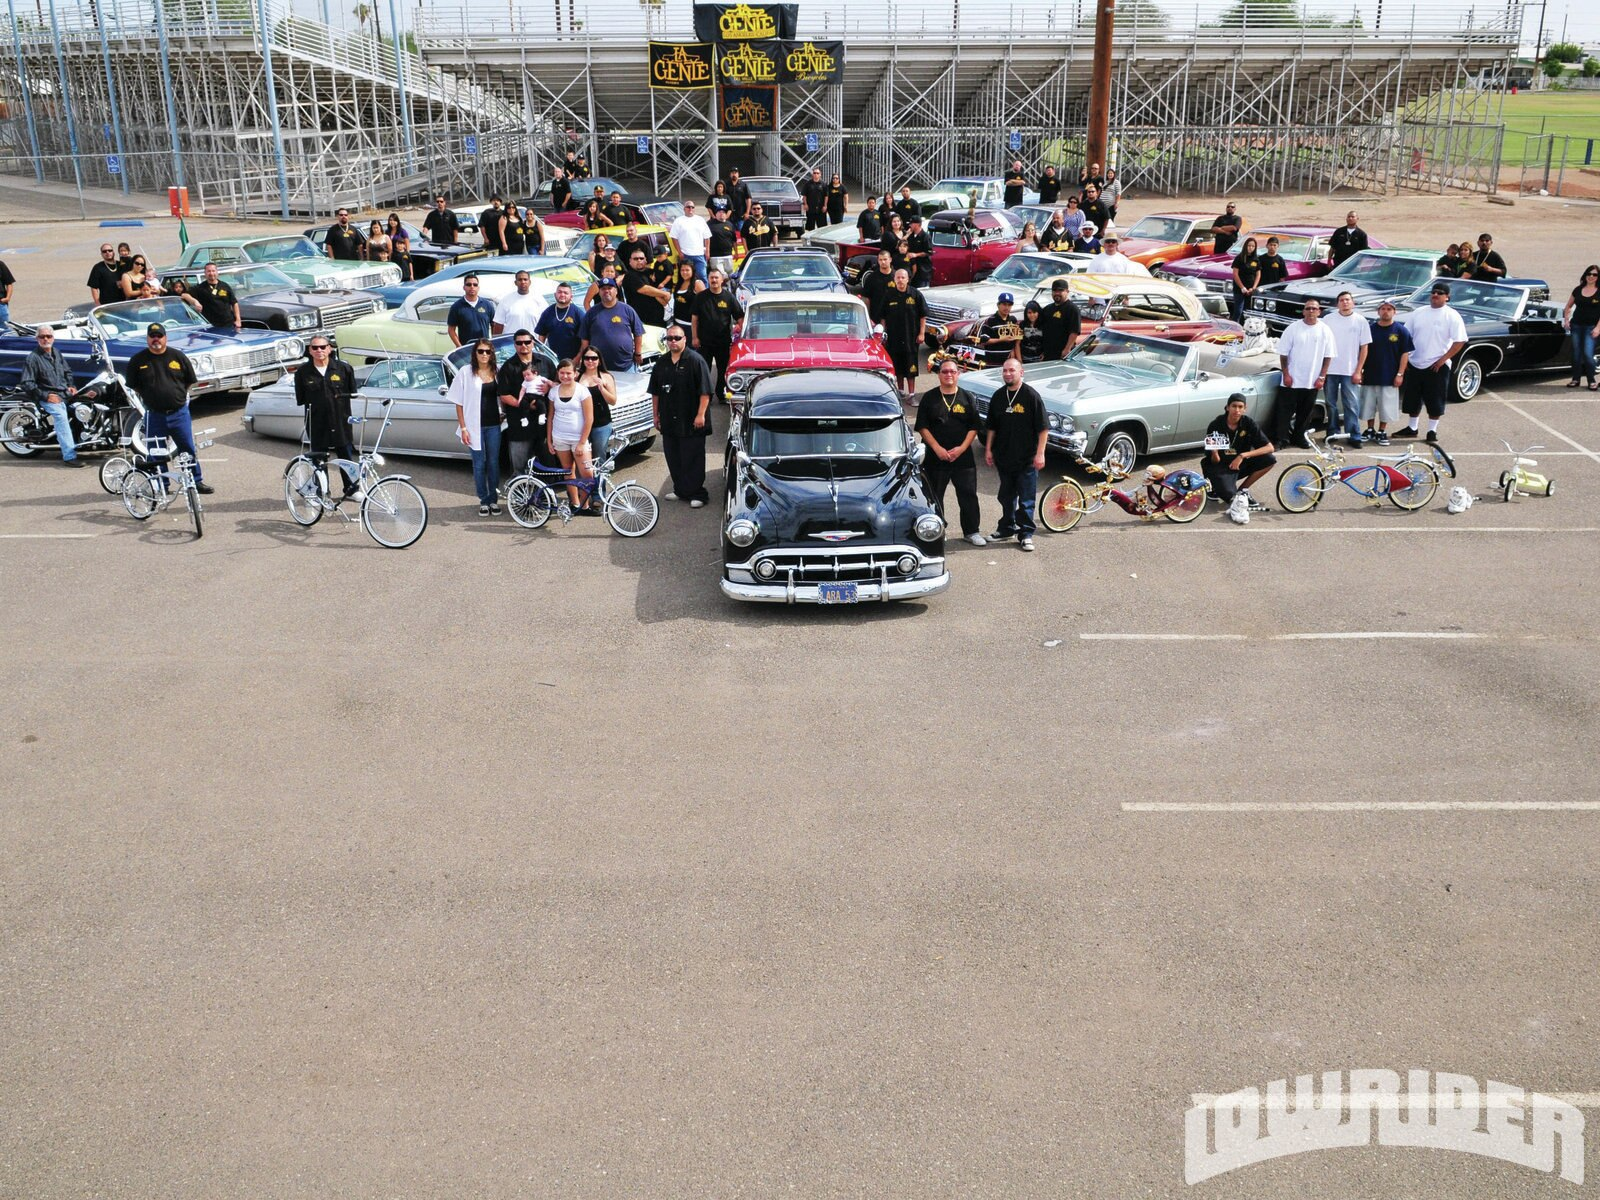 lrmp_1107_01_z-la_gente_car_club-group_photo3